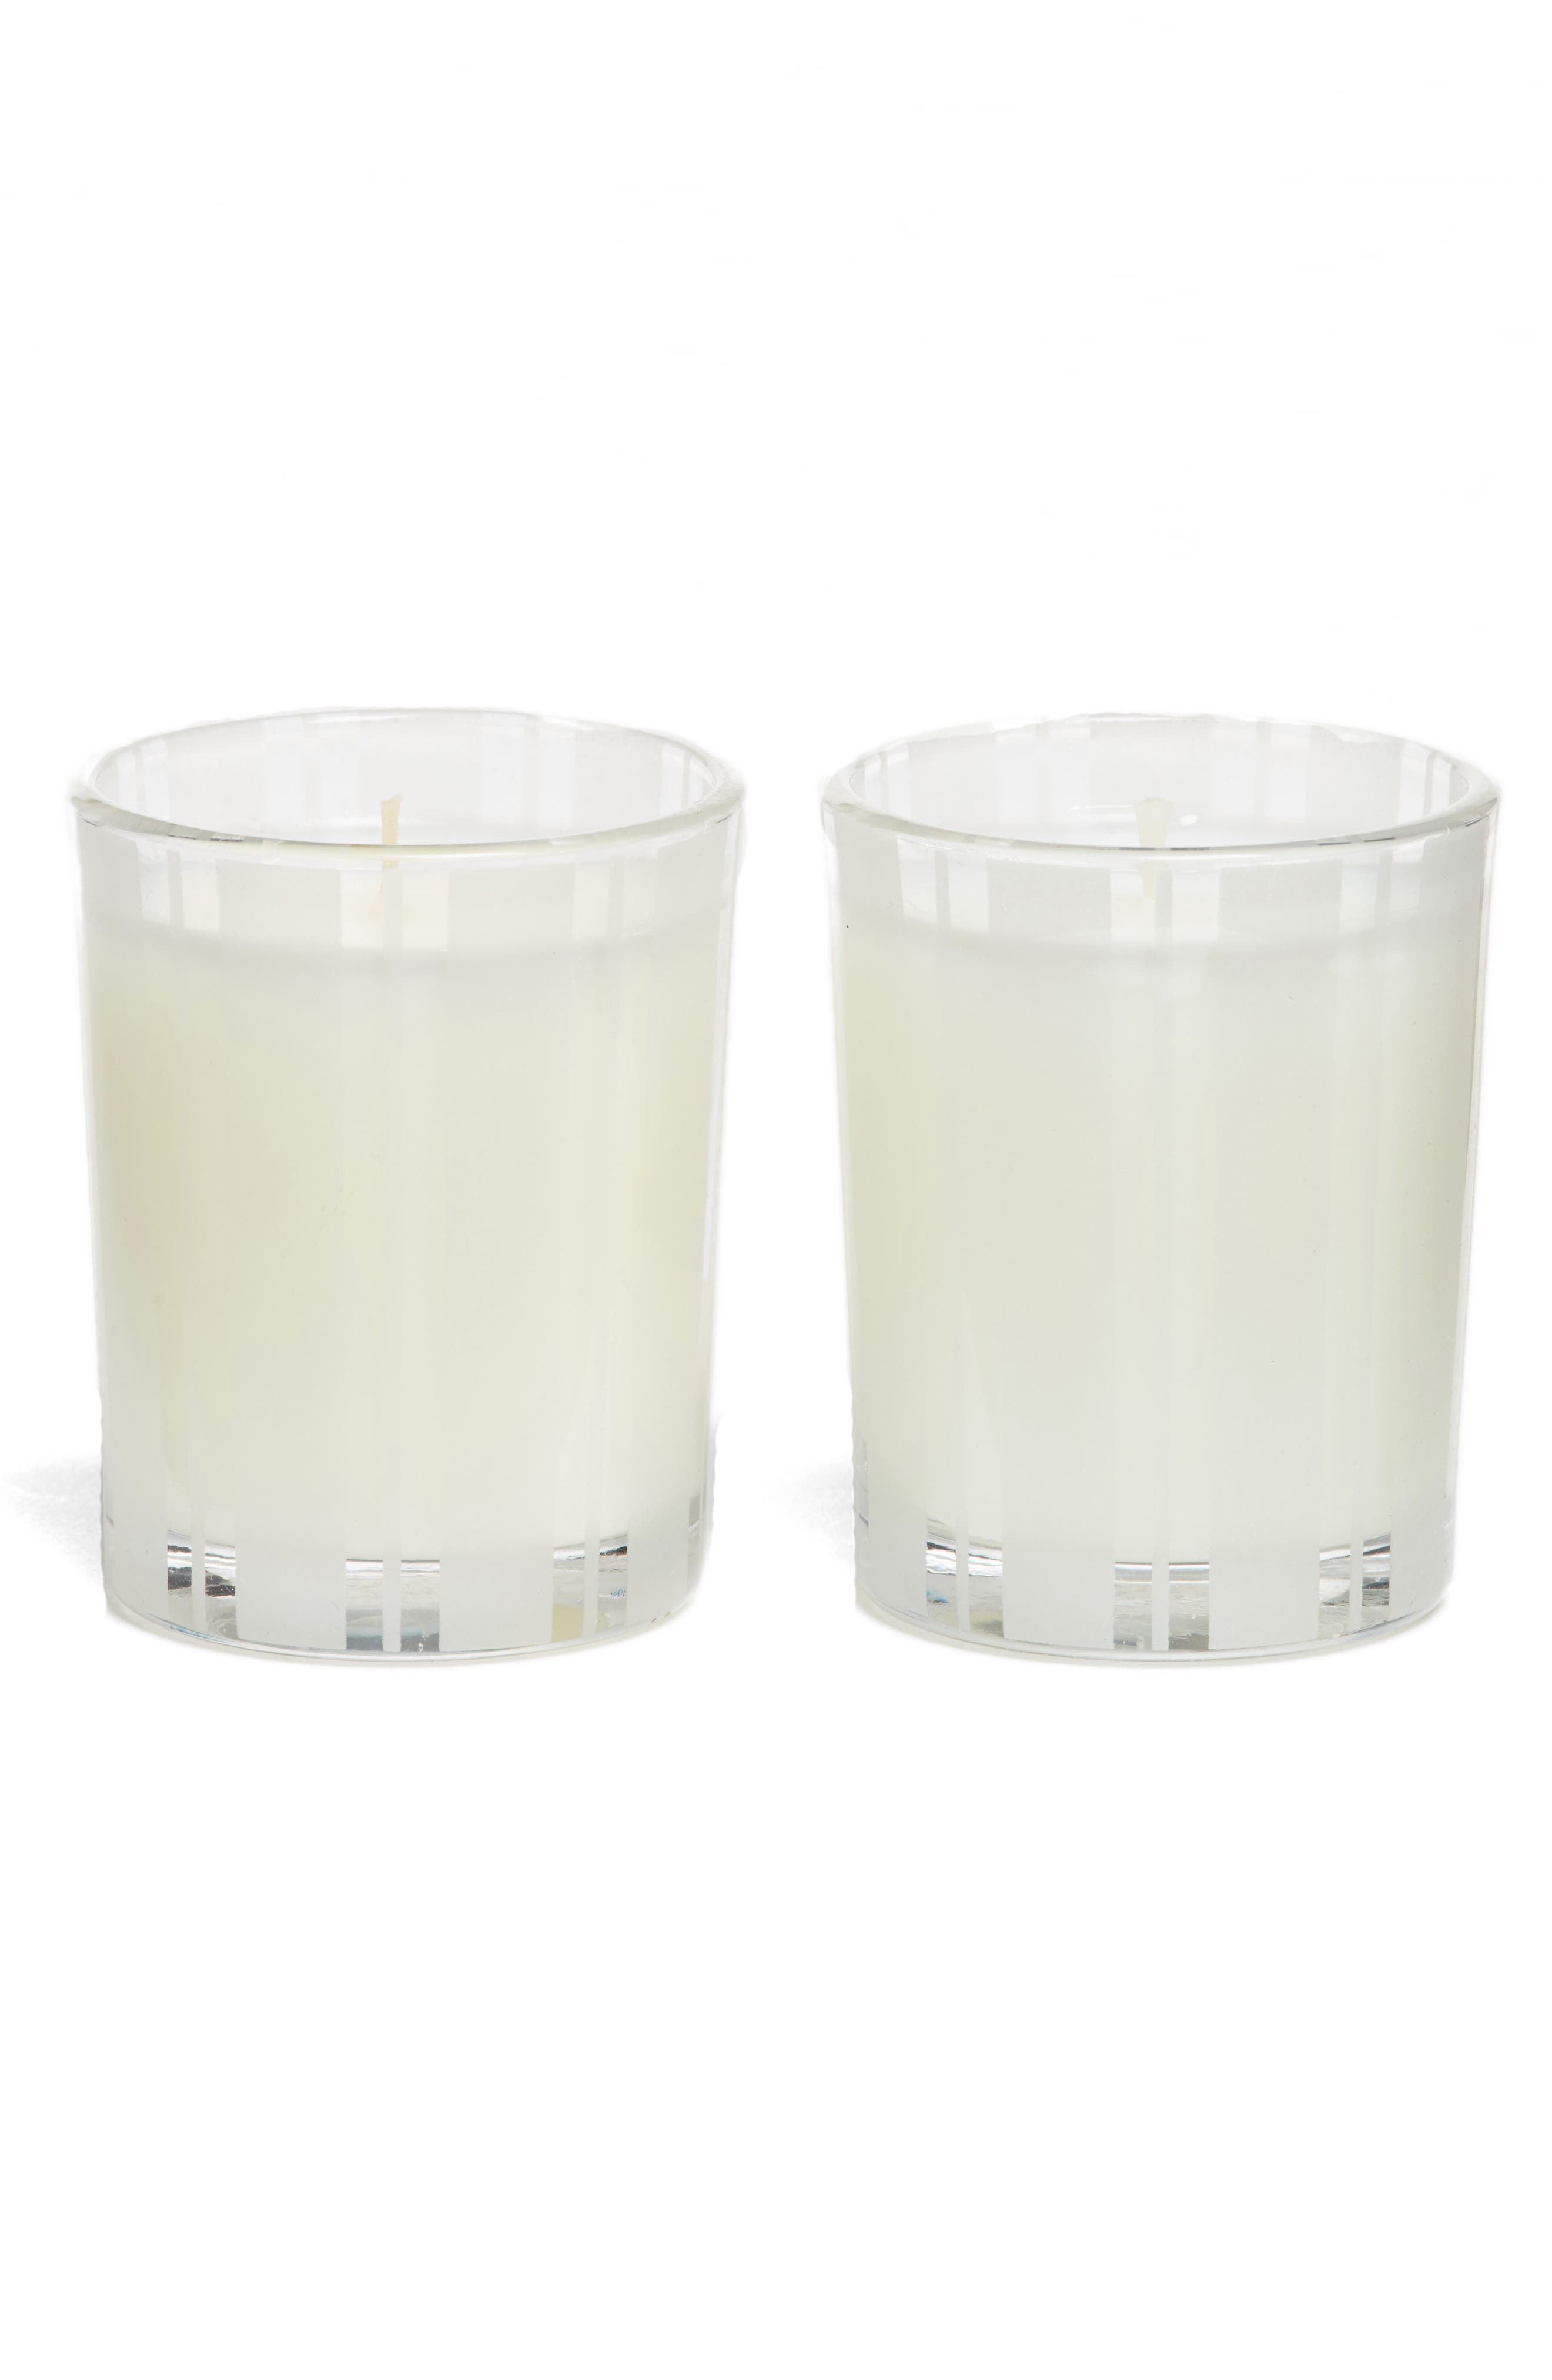 Bamboo & Grapefruit Votive Candle Duo,                             Main thumbnail 1, color,                             000